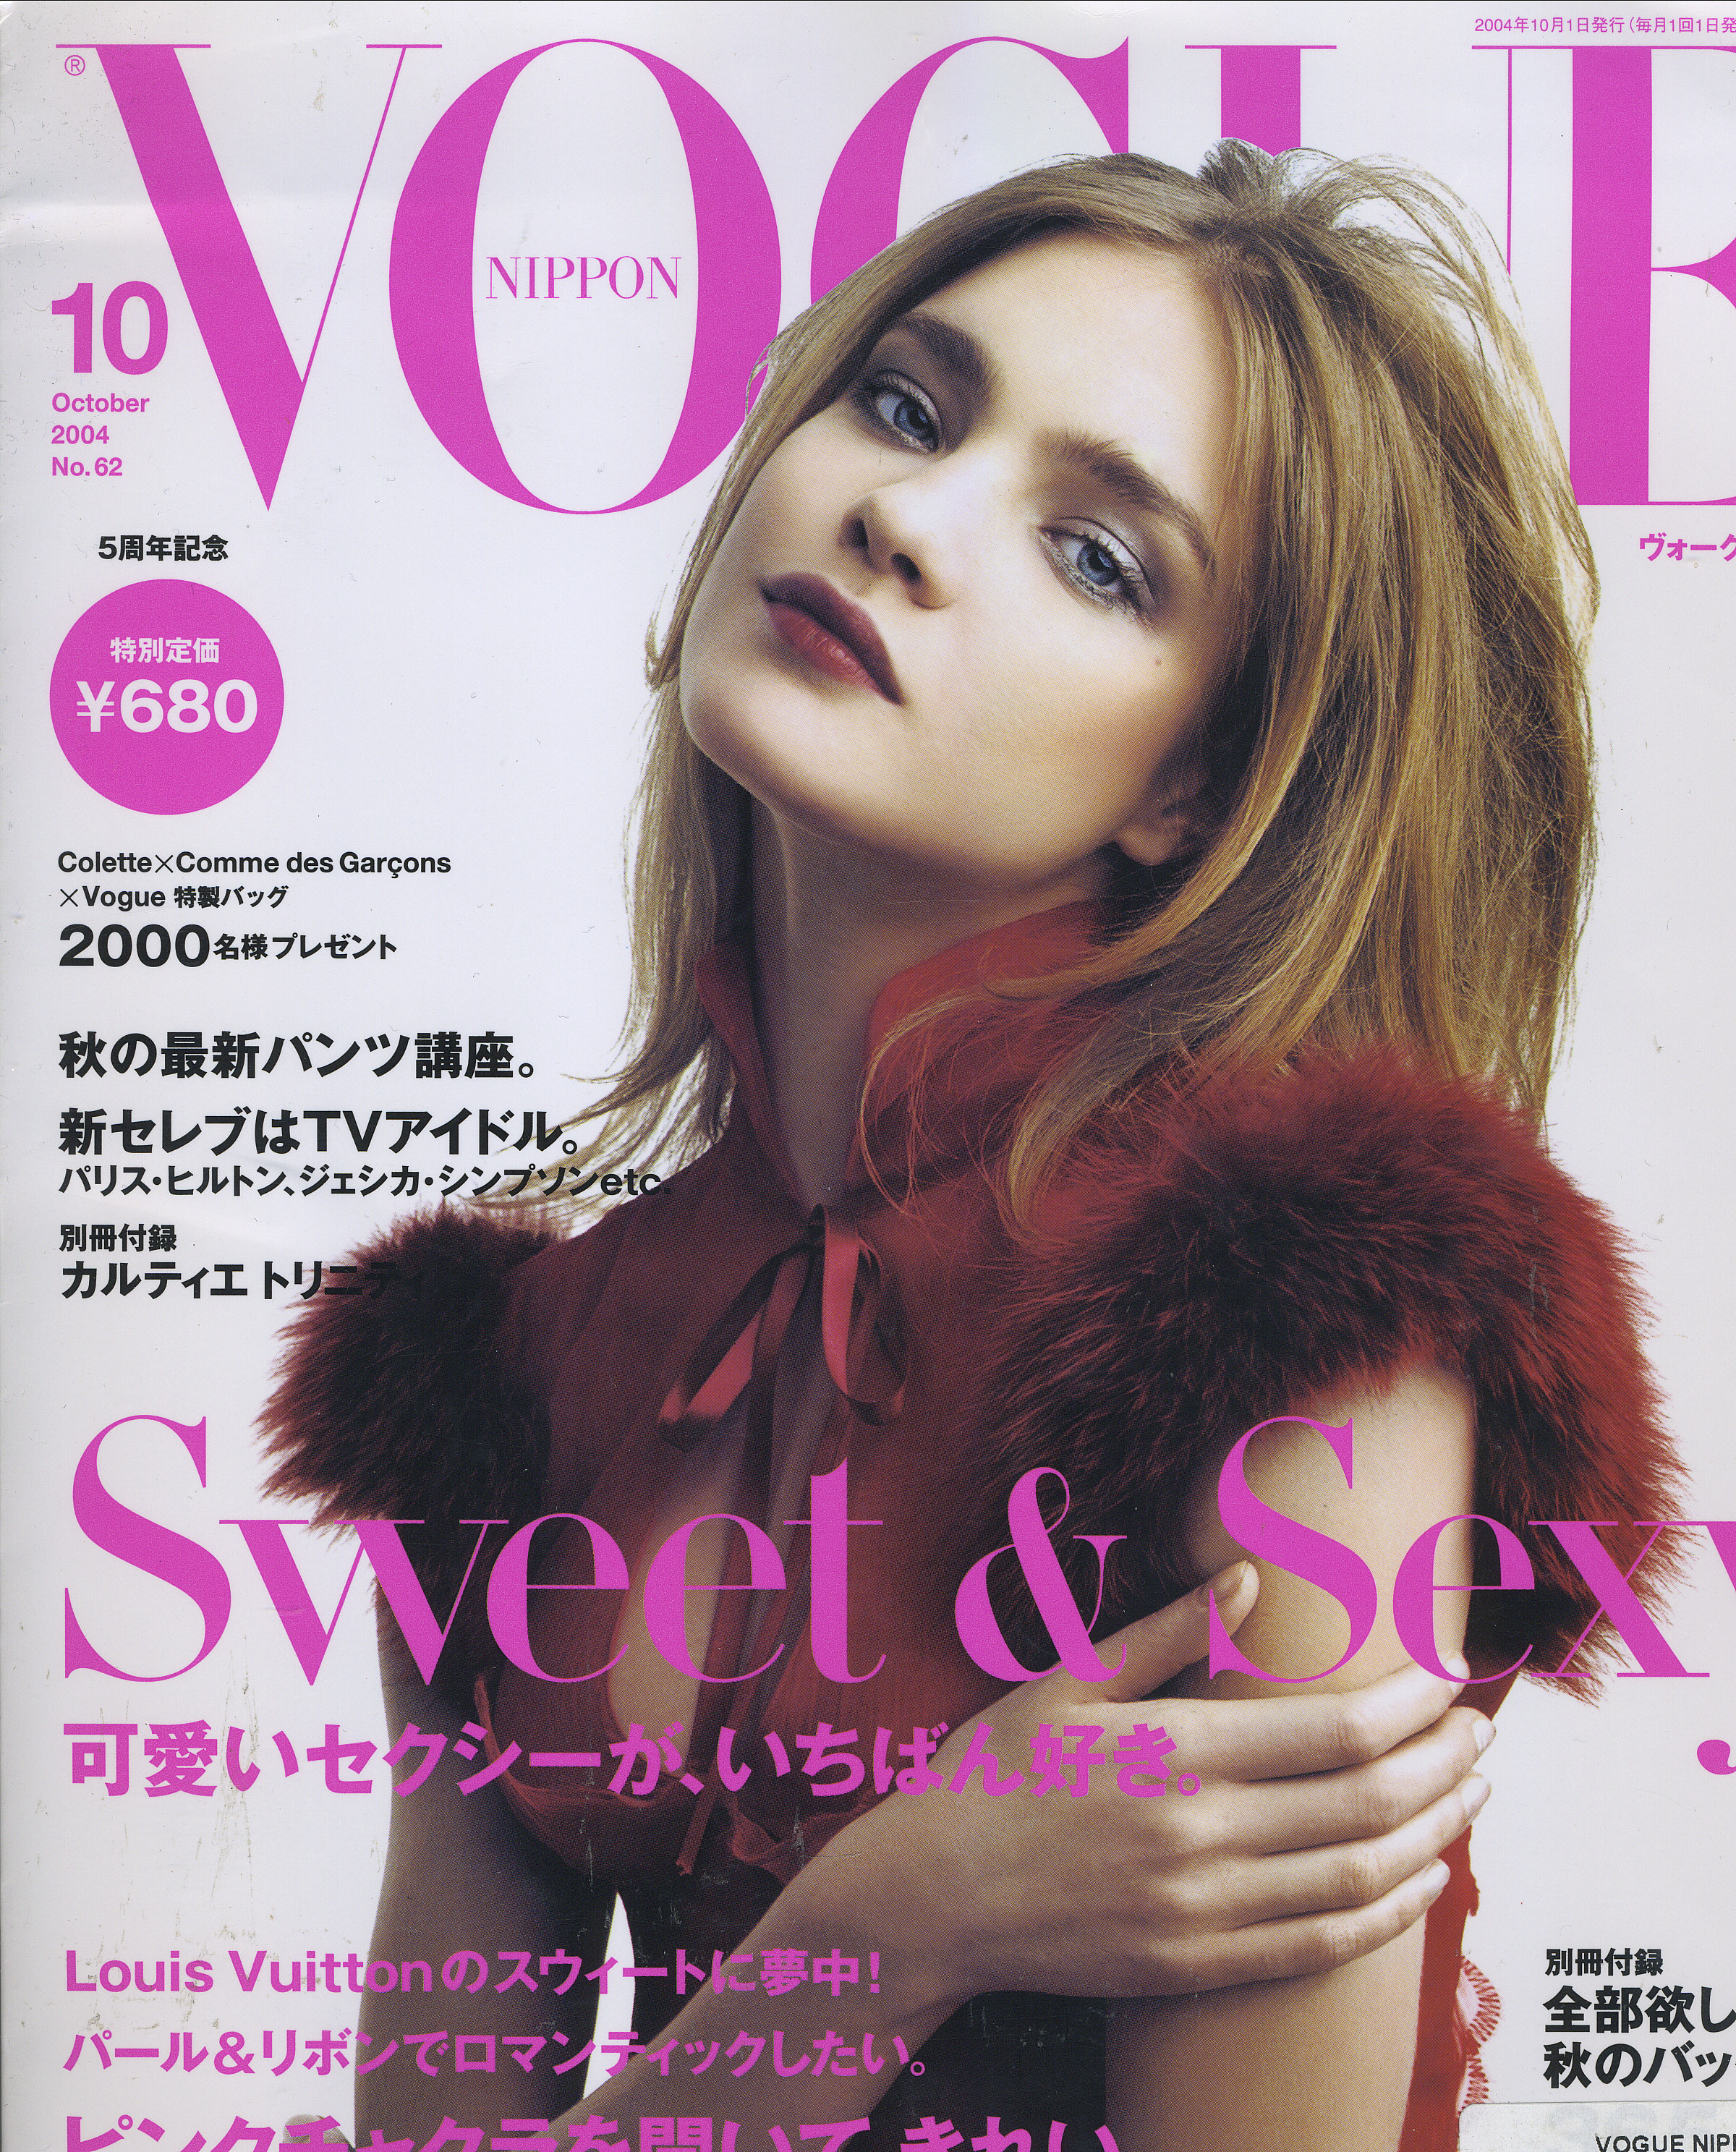 Jap Vogue cover.jpg